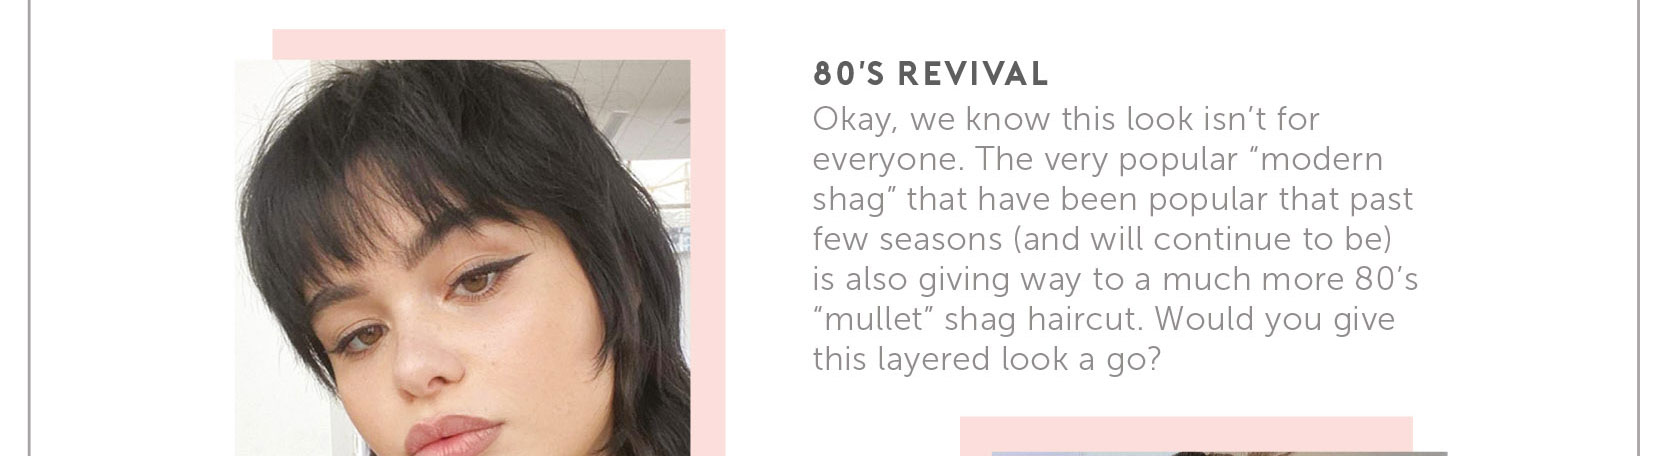 """80's Revival. Okay, we know this look isn't for everyone. The very popular """"modern shag"""" that have been popular the past few seasons (and will continue to be) is also giving way to a much more 80's """"mullet"""" shag haircut. Would you give this layered look a go?"""